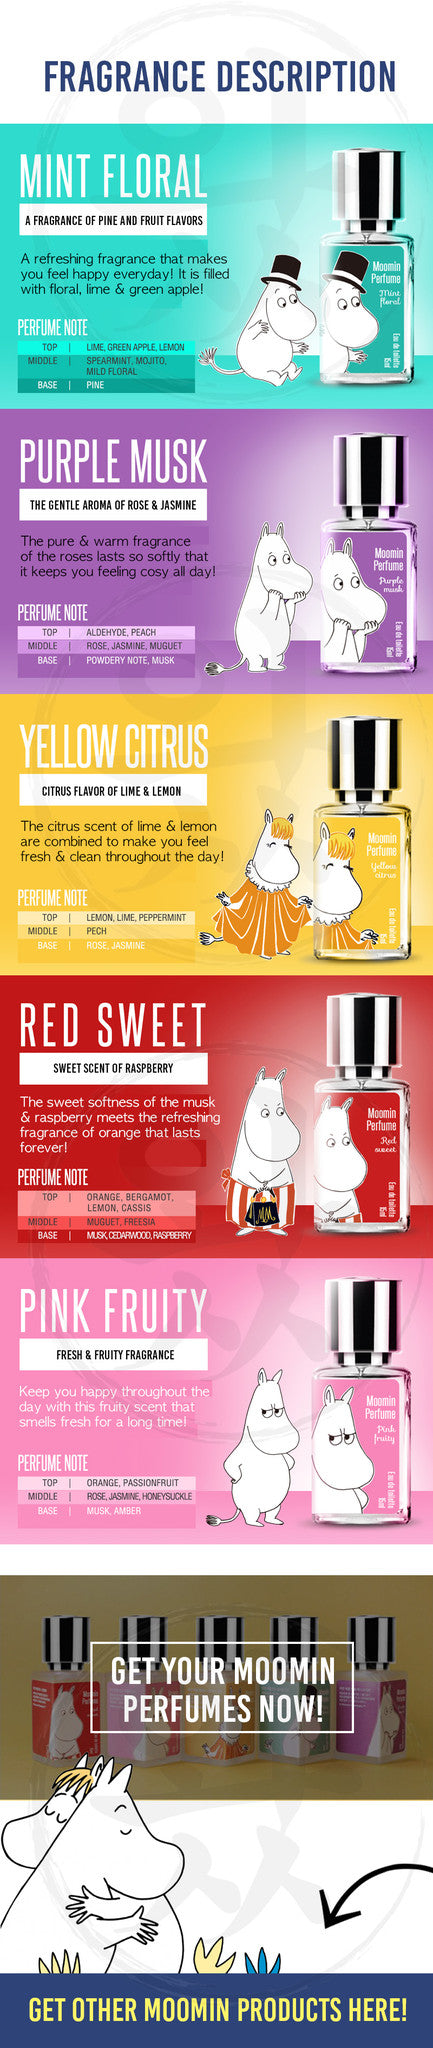 Check out the different scents our Moomin Spray Perfumes have to offer!